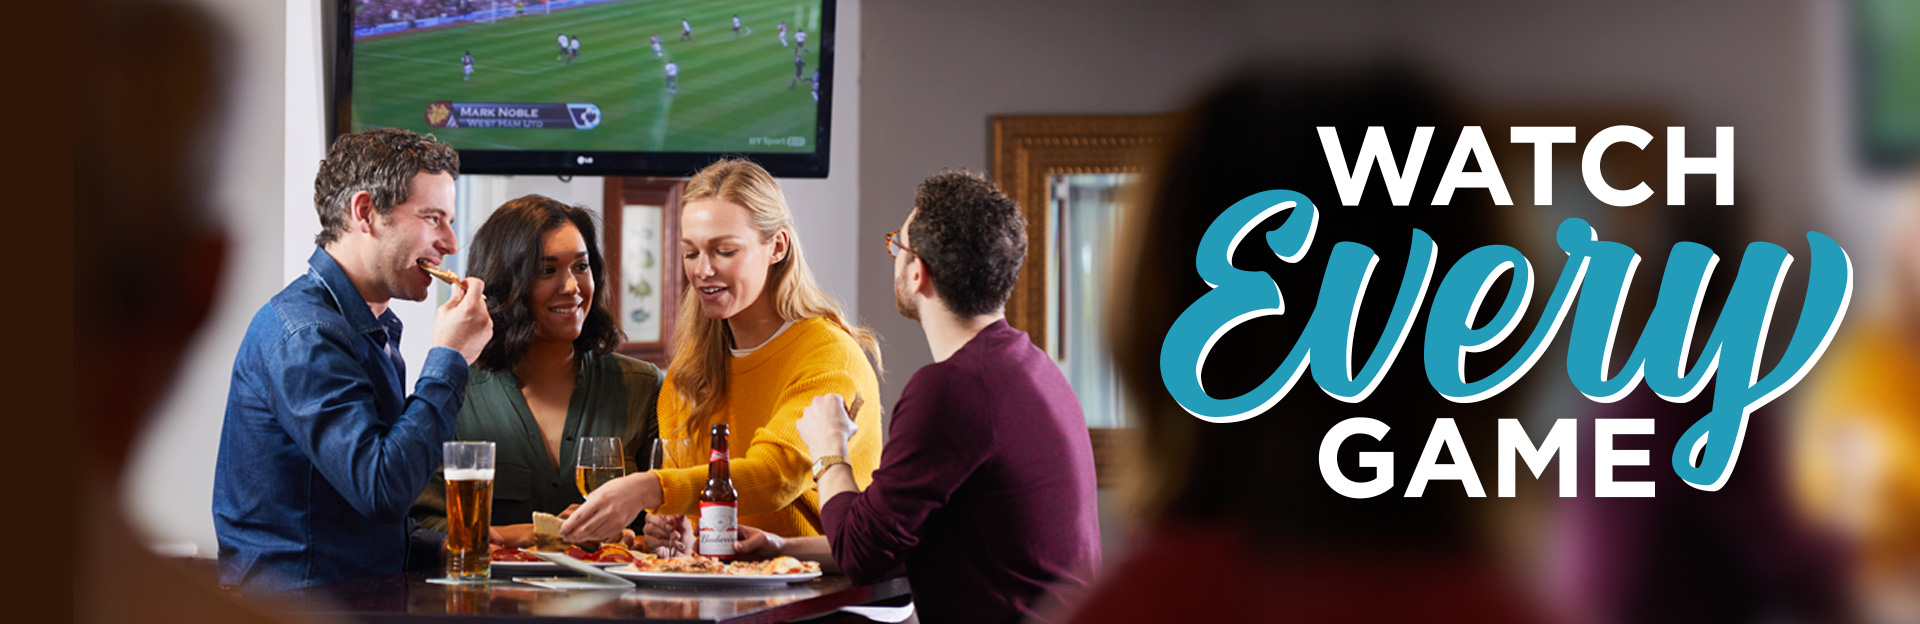 Watch Sport at The Astley Arms